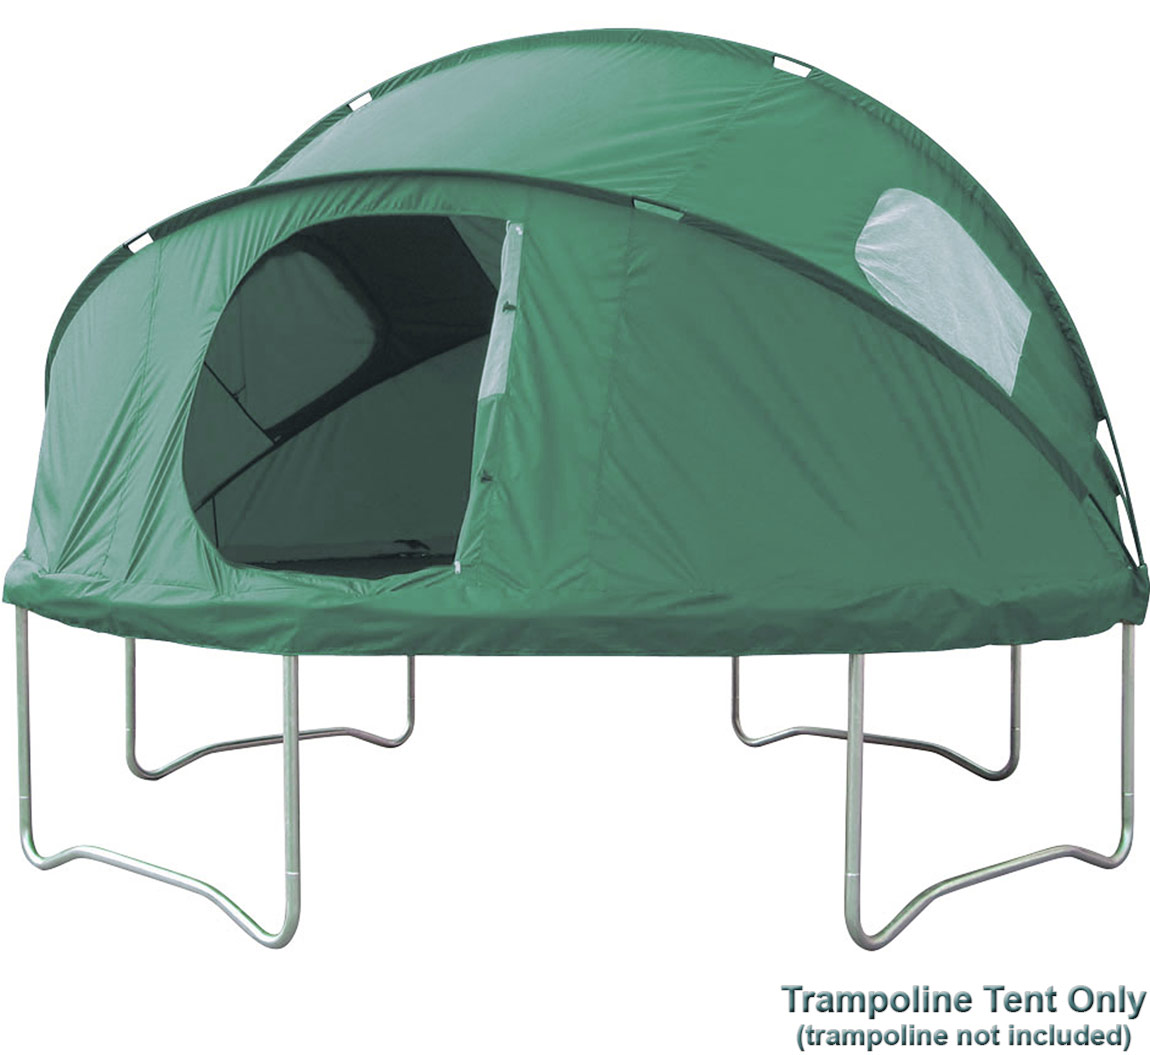 8ft Trampoline Tent